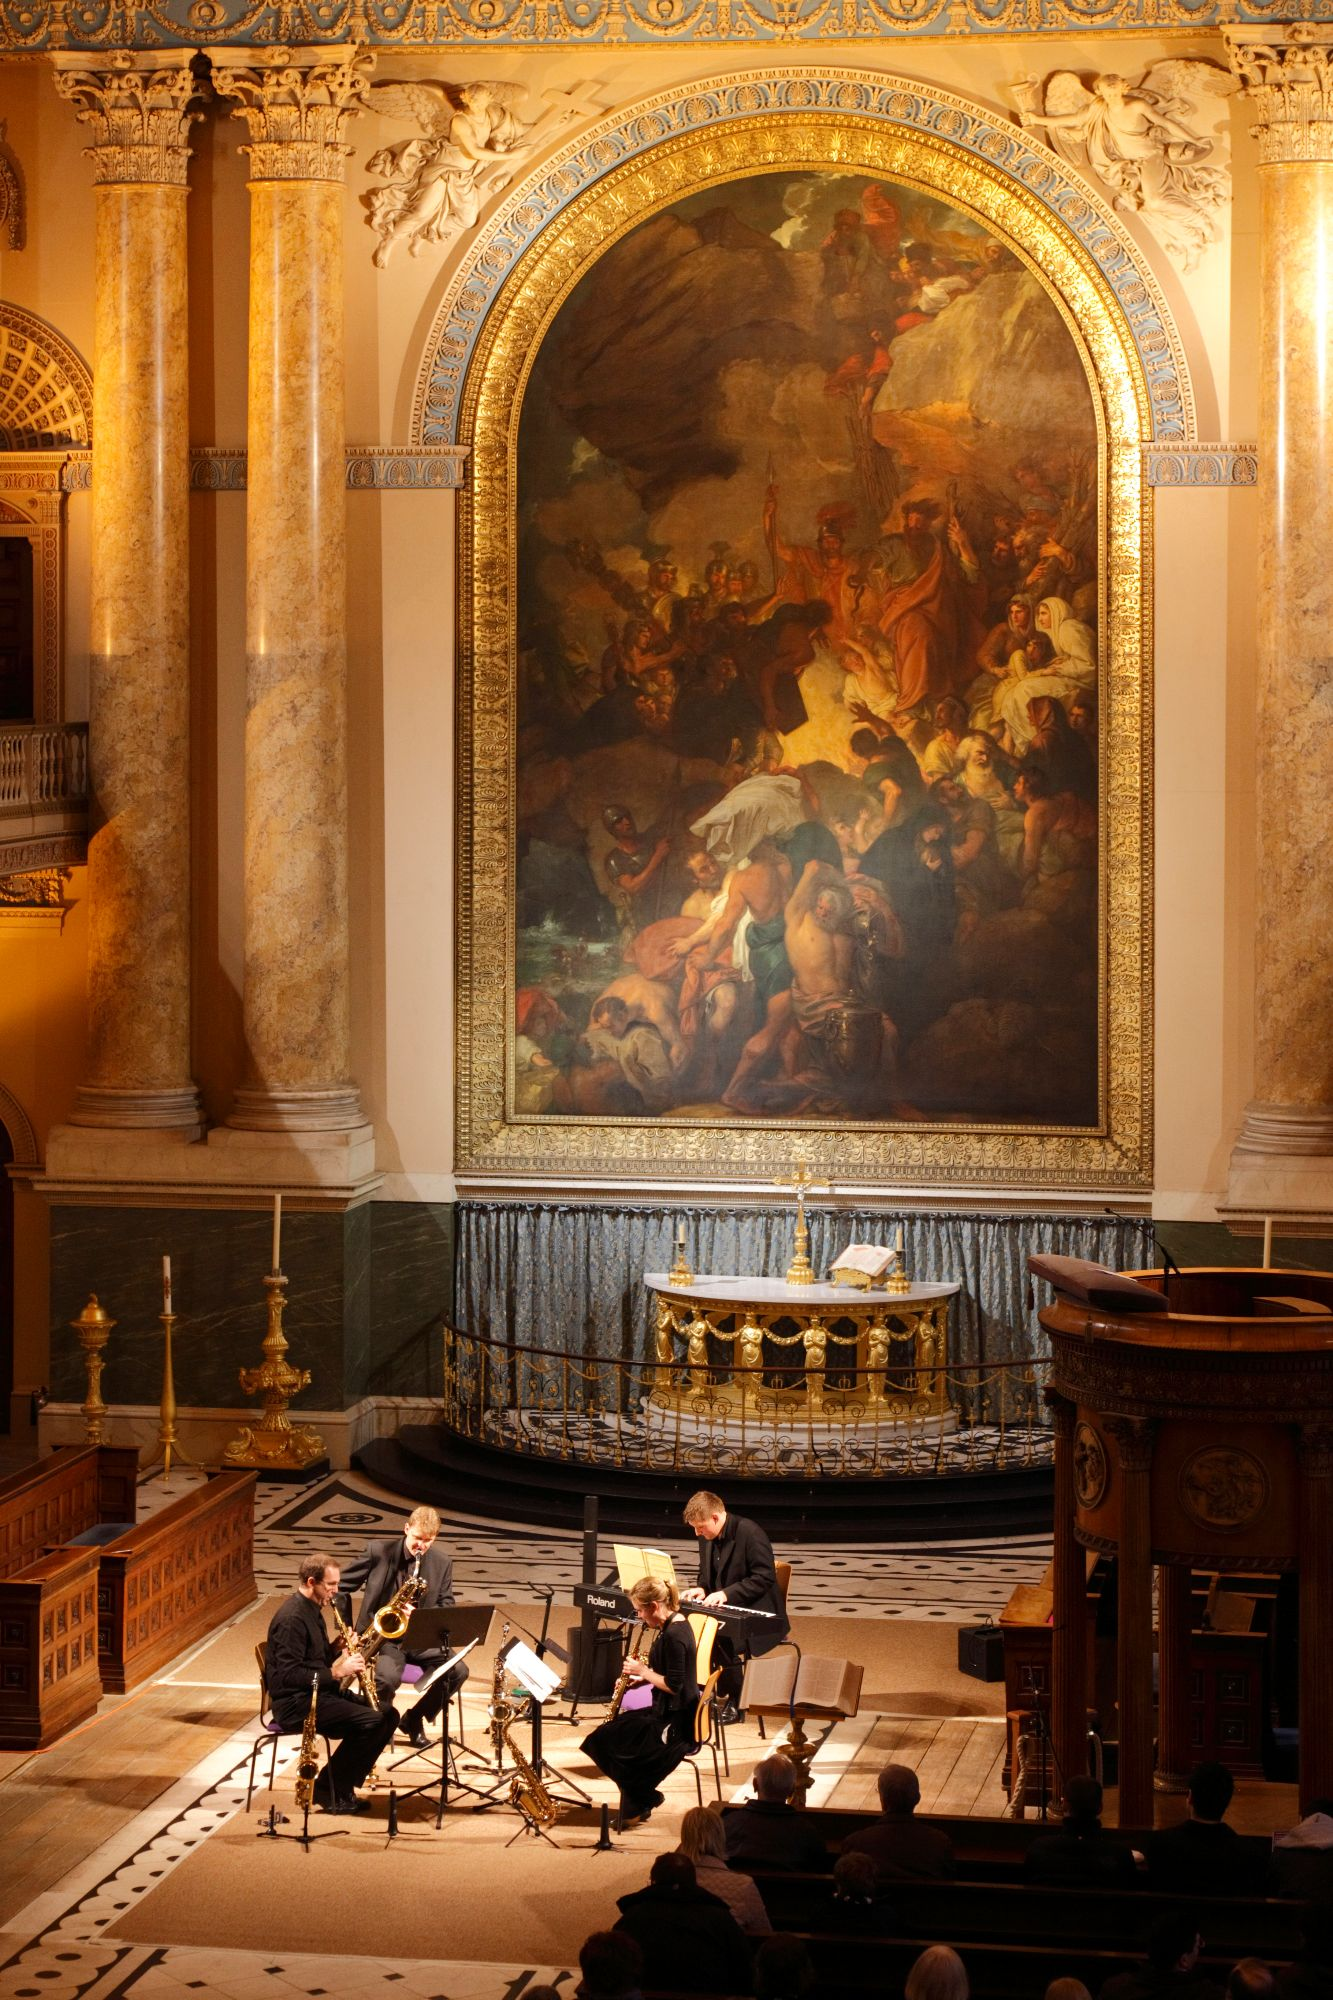 Flotilla performing at Royal Naval Chapel